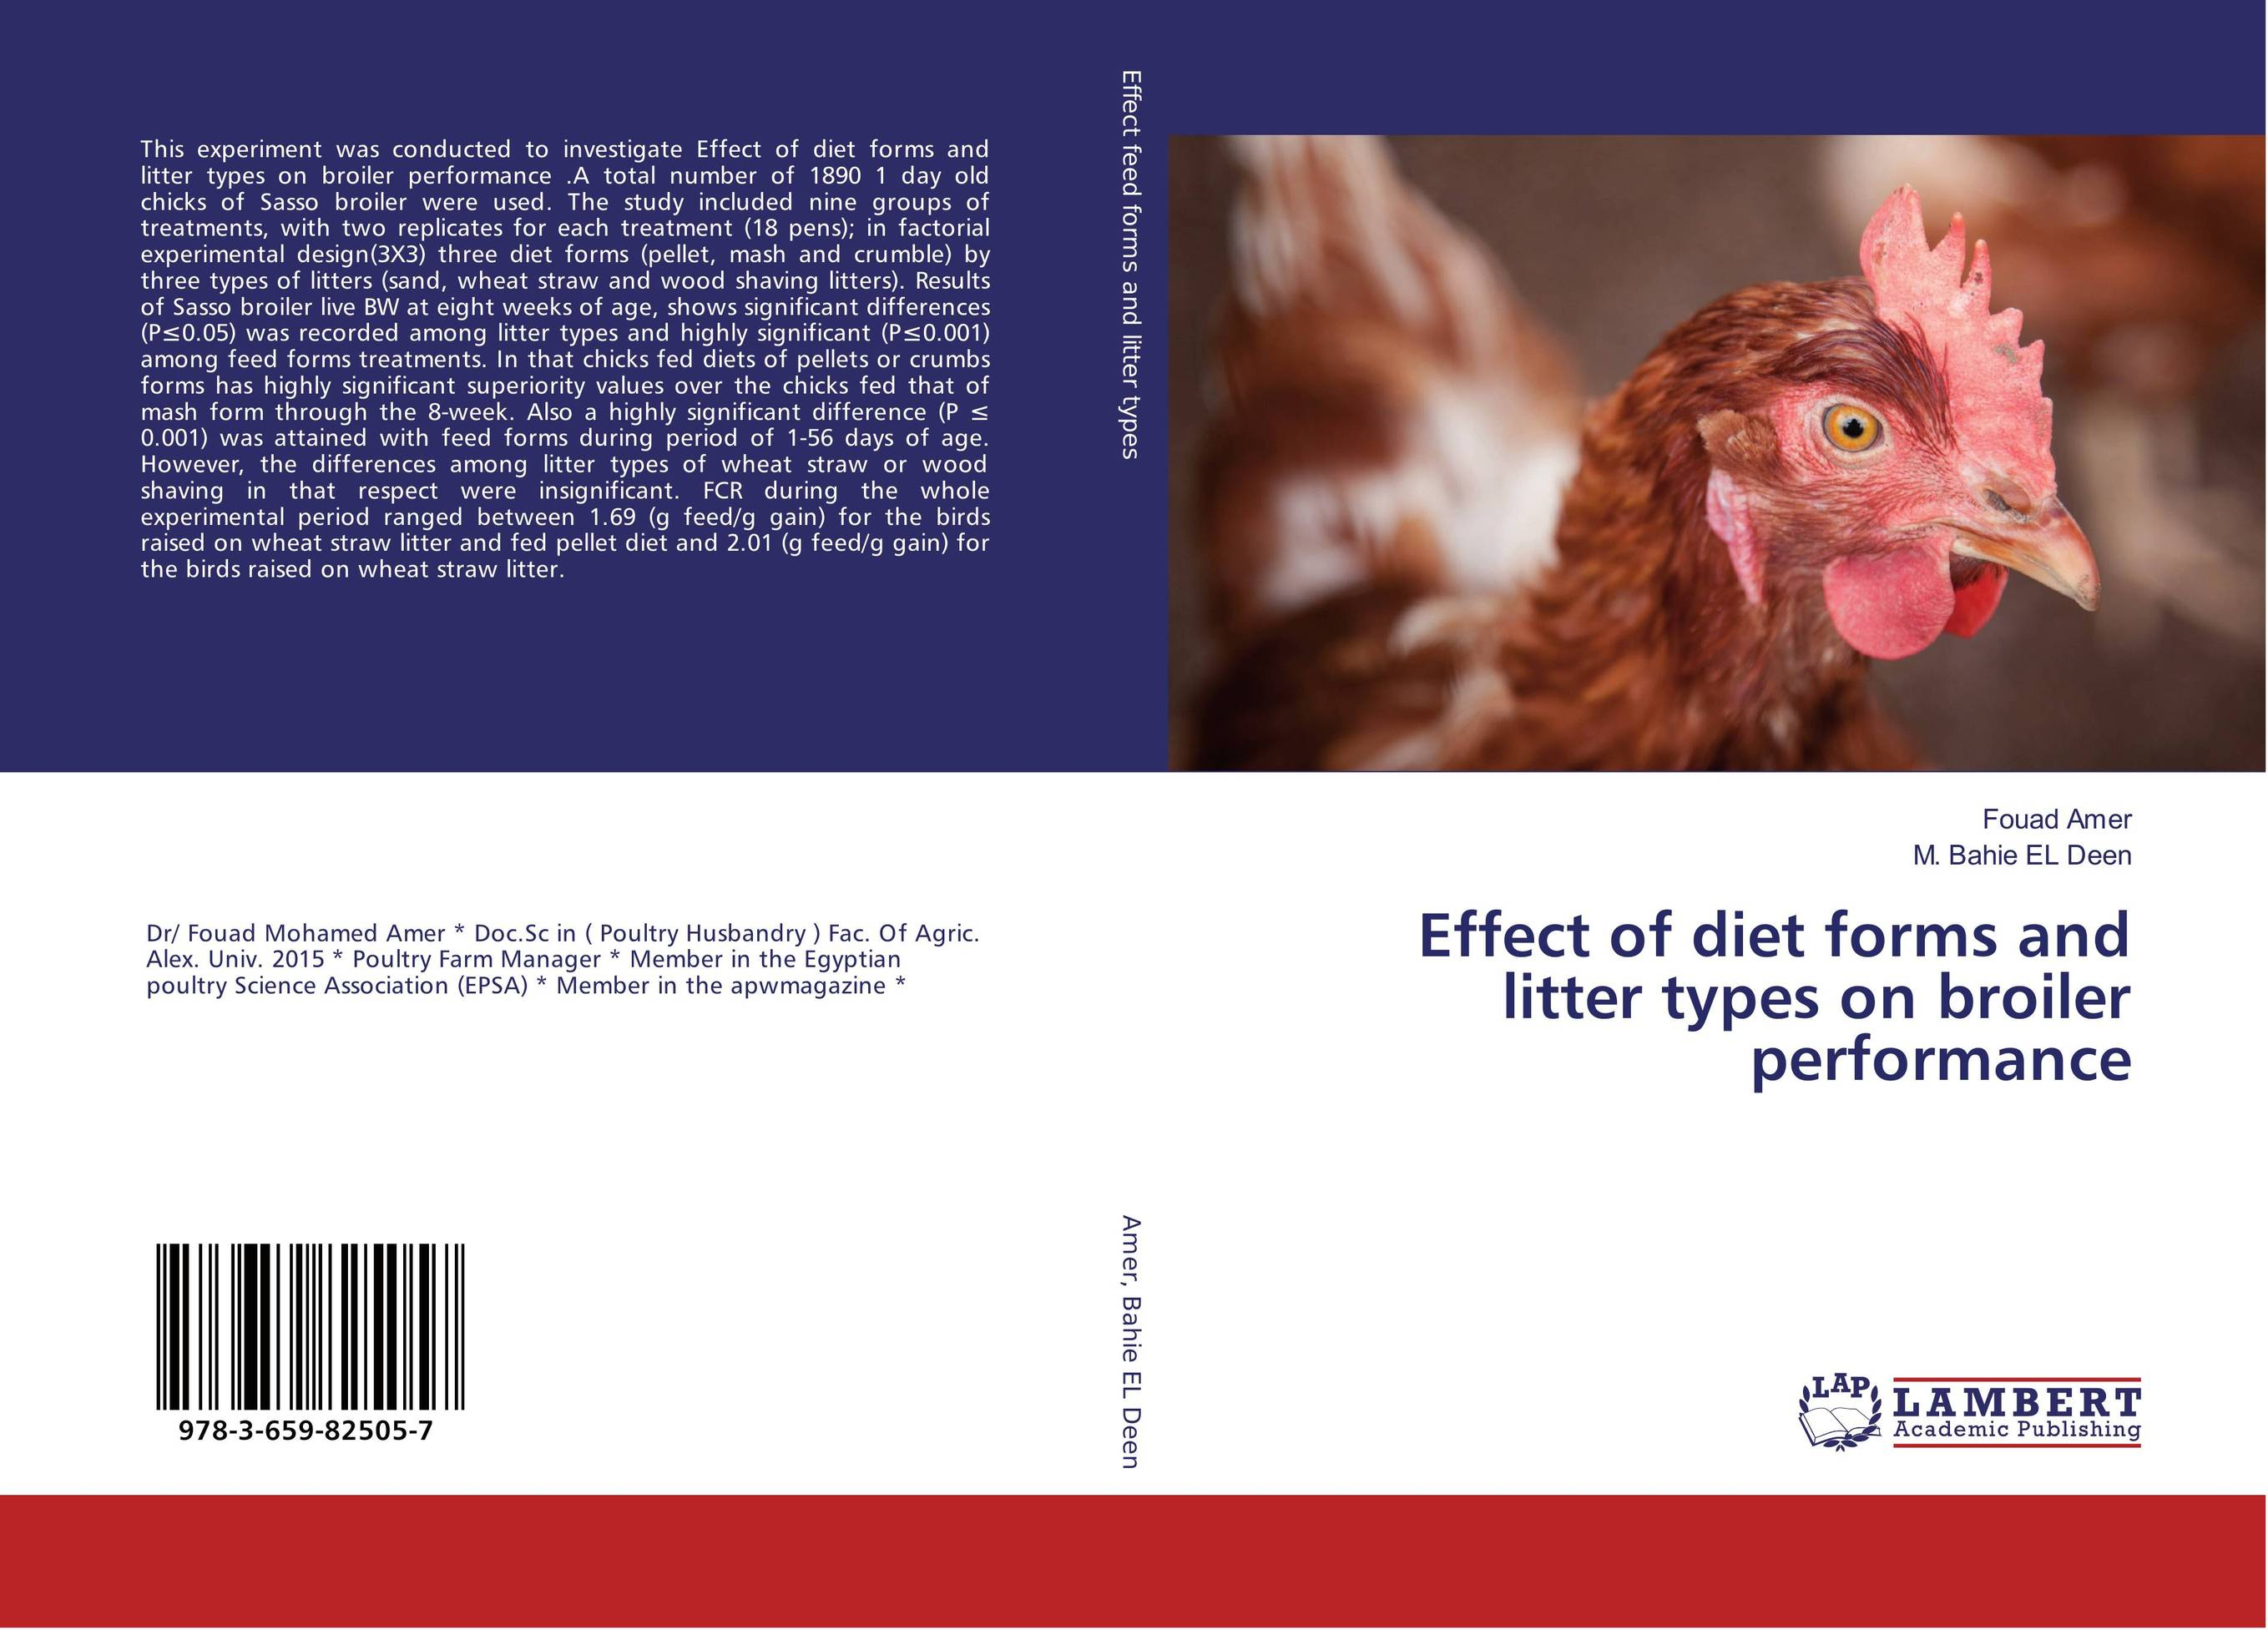 Effect of diet forms and litter types on broiler performance rajhans verma santosh kumar pandey and w p badole effect of methods of composting on quality of compost from wheat straw